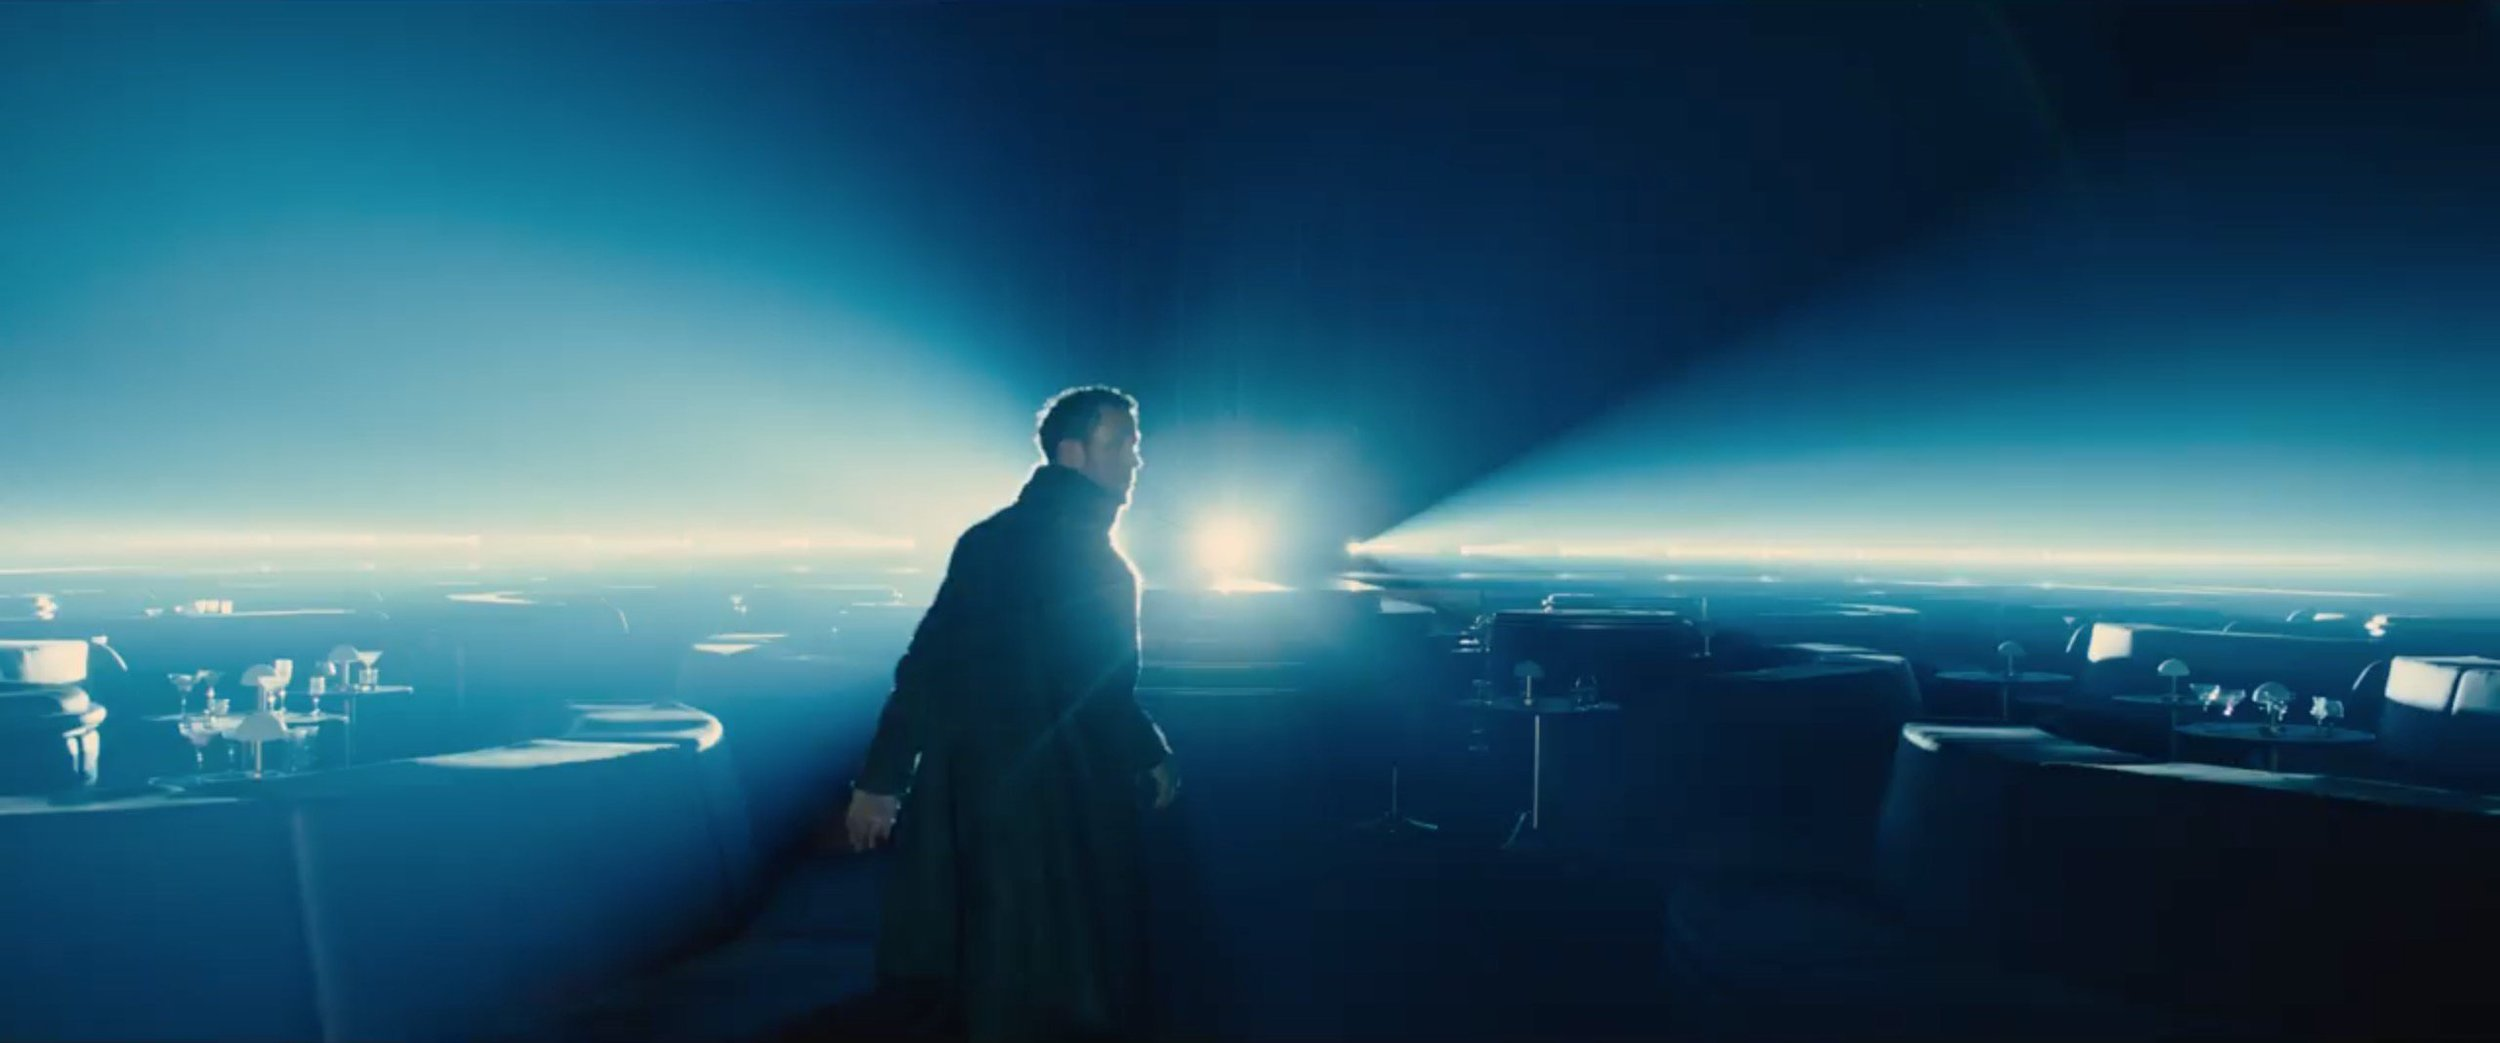 Blade-Runner-2049-trailer-breakdown-33.jpg